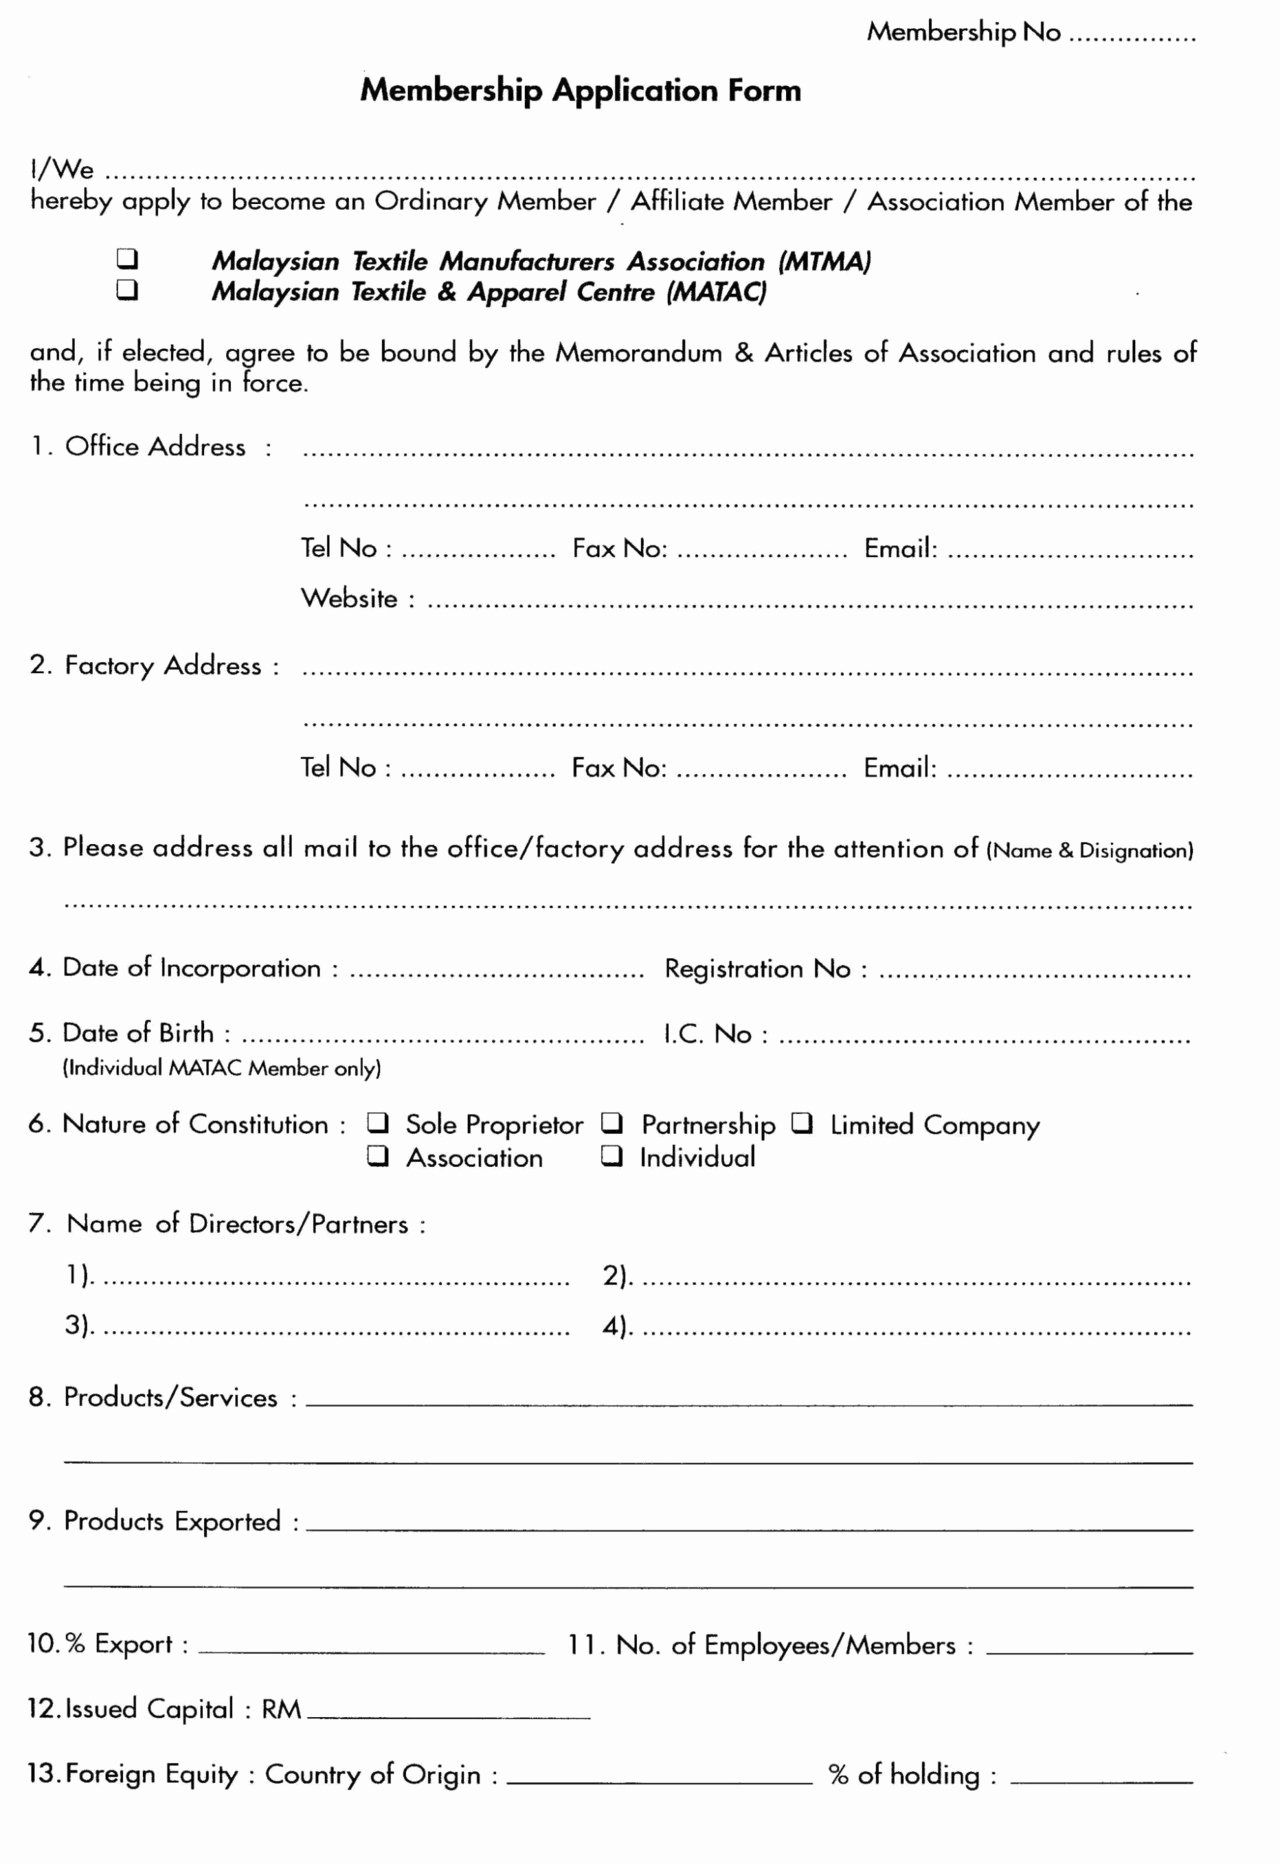 Membership Application Form Sample In 2020 Application Form